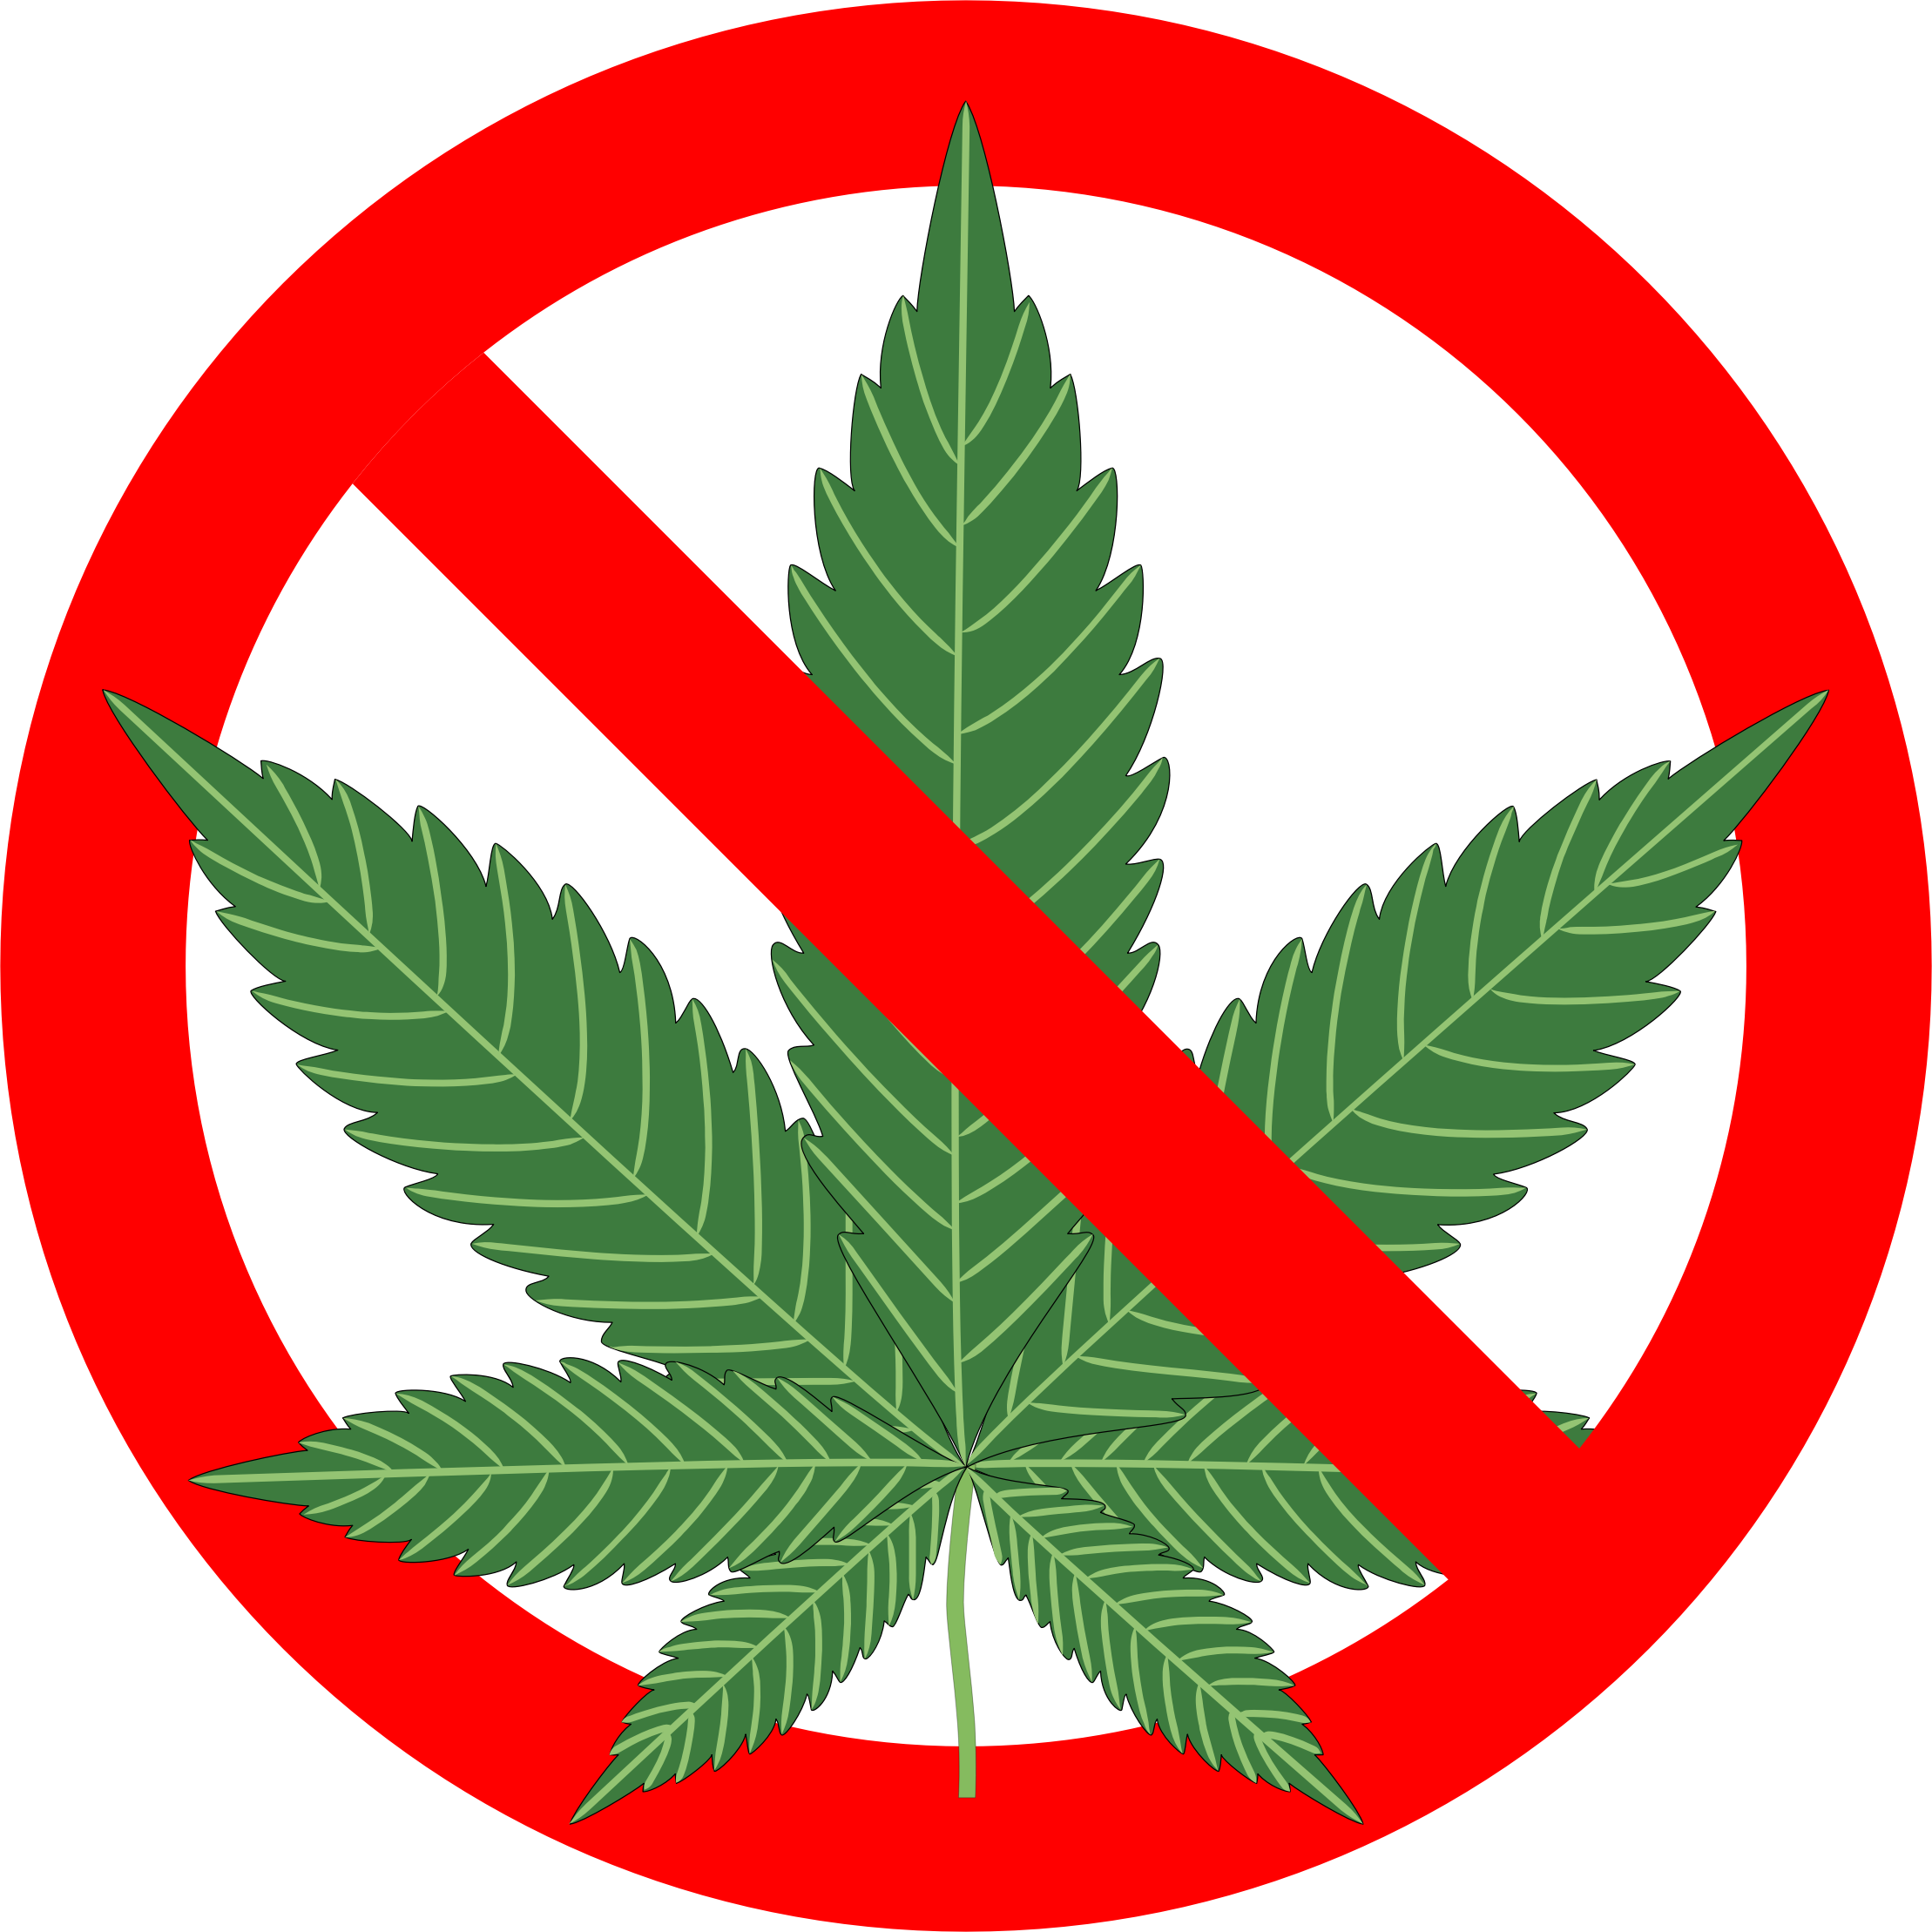 Free Smoking Weed Cliparts, Download Free Clip Art, Free.